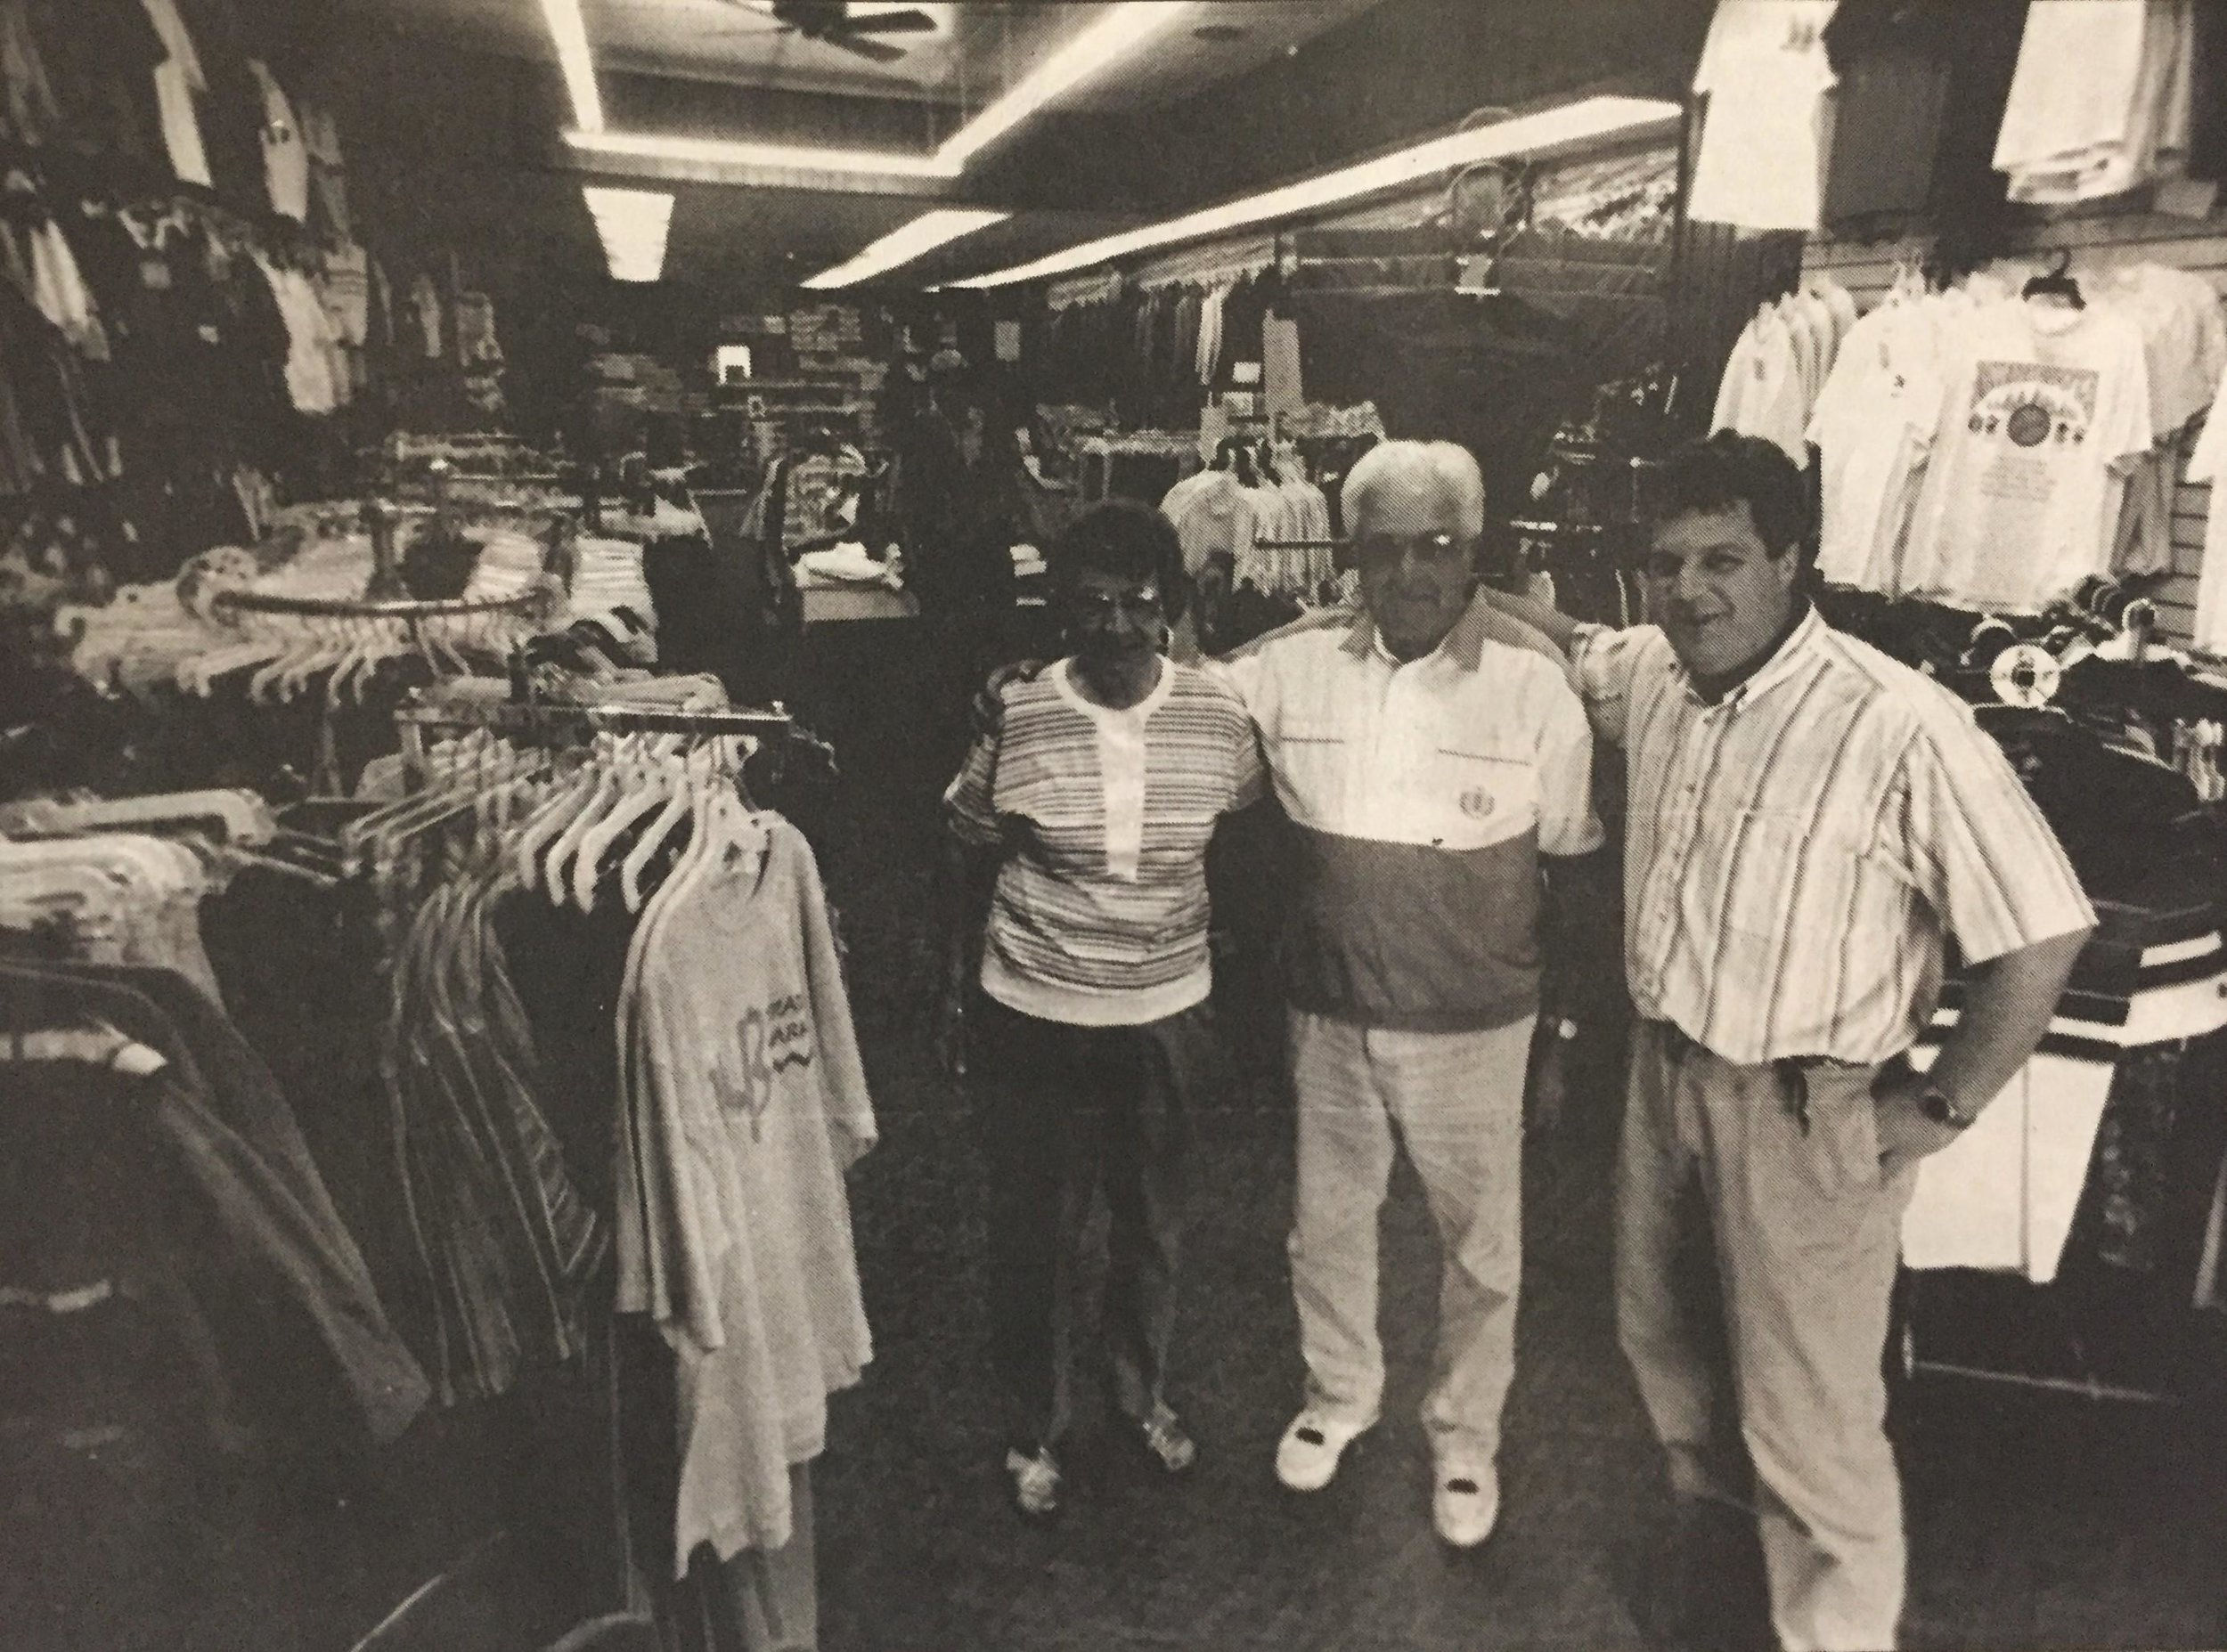 Hilde and Gardy Richter stand by Steve in 1994 for the store's 25th anniversary. Richter's Men's Wear is now celebrating 50 years. (Chuck Johnson)